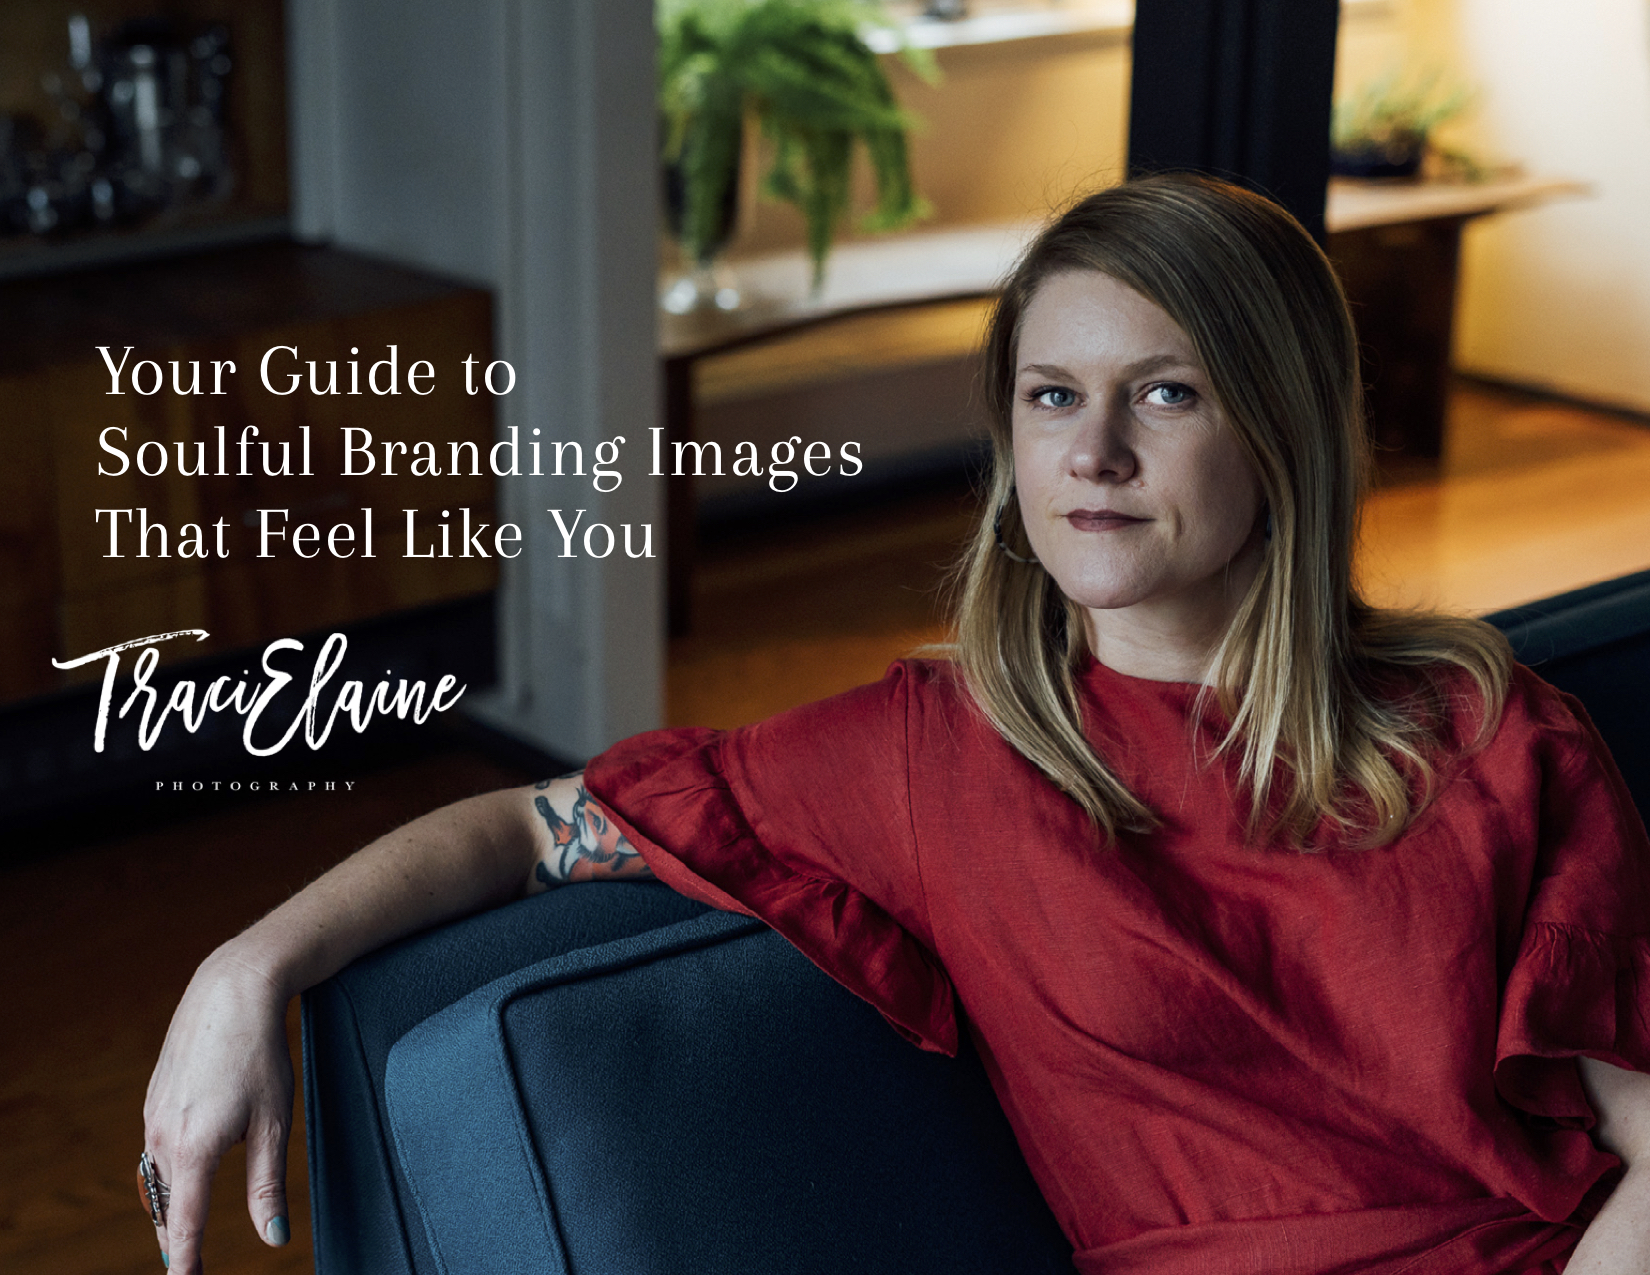 Guide to Soulful Lifestyle Branding Images